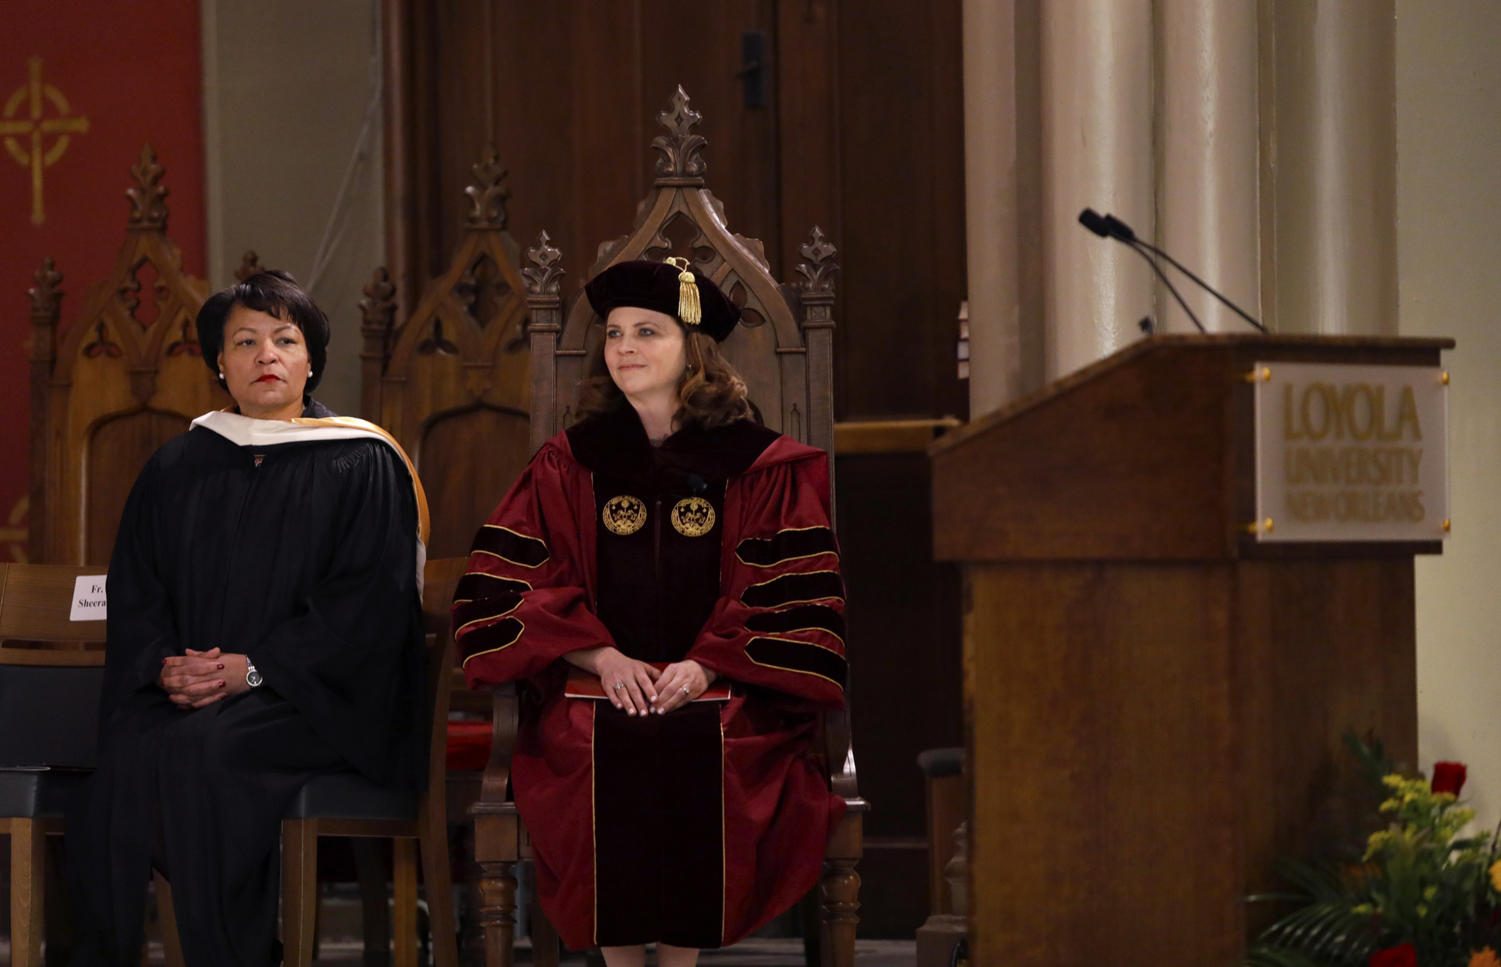 New Orleans Mayor Latoya Cantrell sits aside President Tetlow at the Inauguration Ceremony. Photo credit: Angelo Imbraguglio